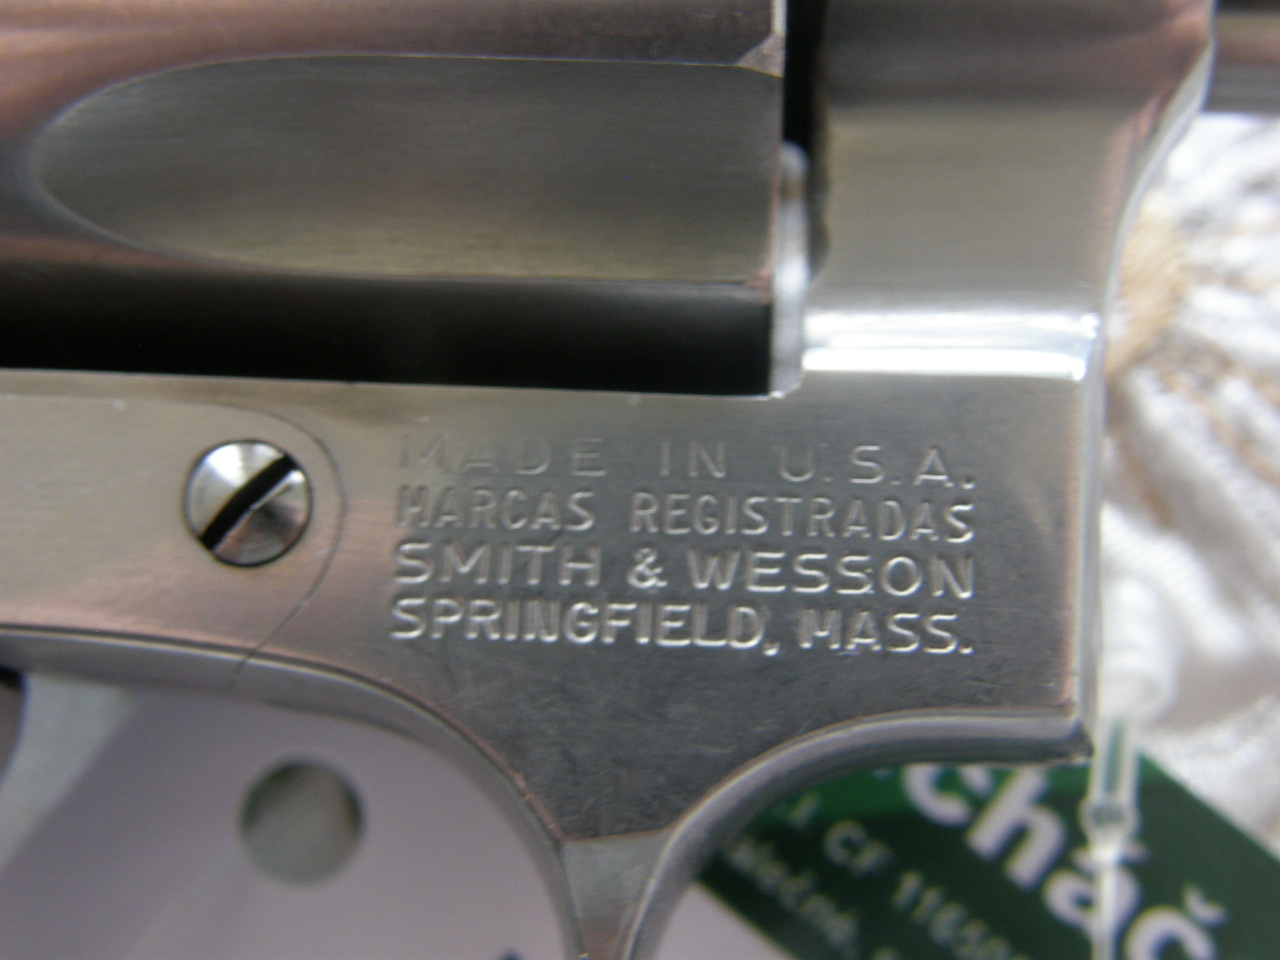 Revolver Smith Wesson Mod. 60 v.č.R 138107 r.38 Sp.